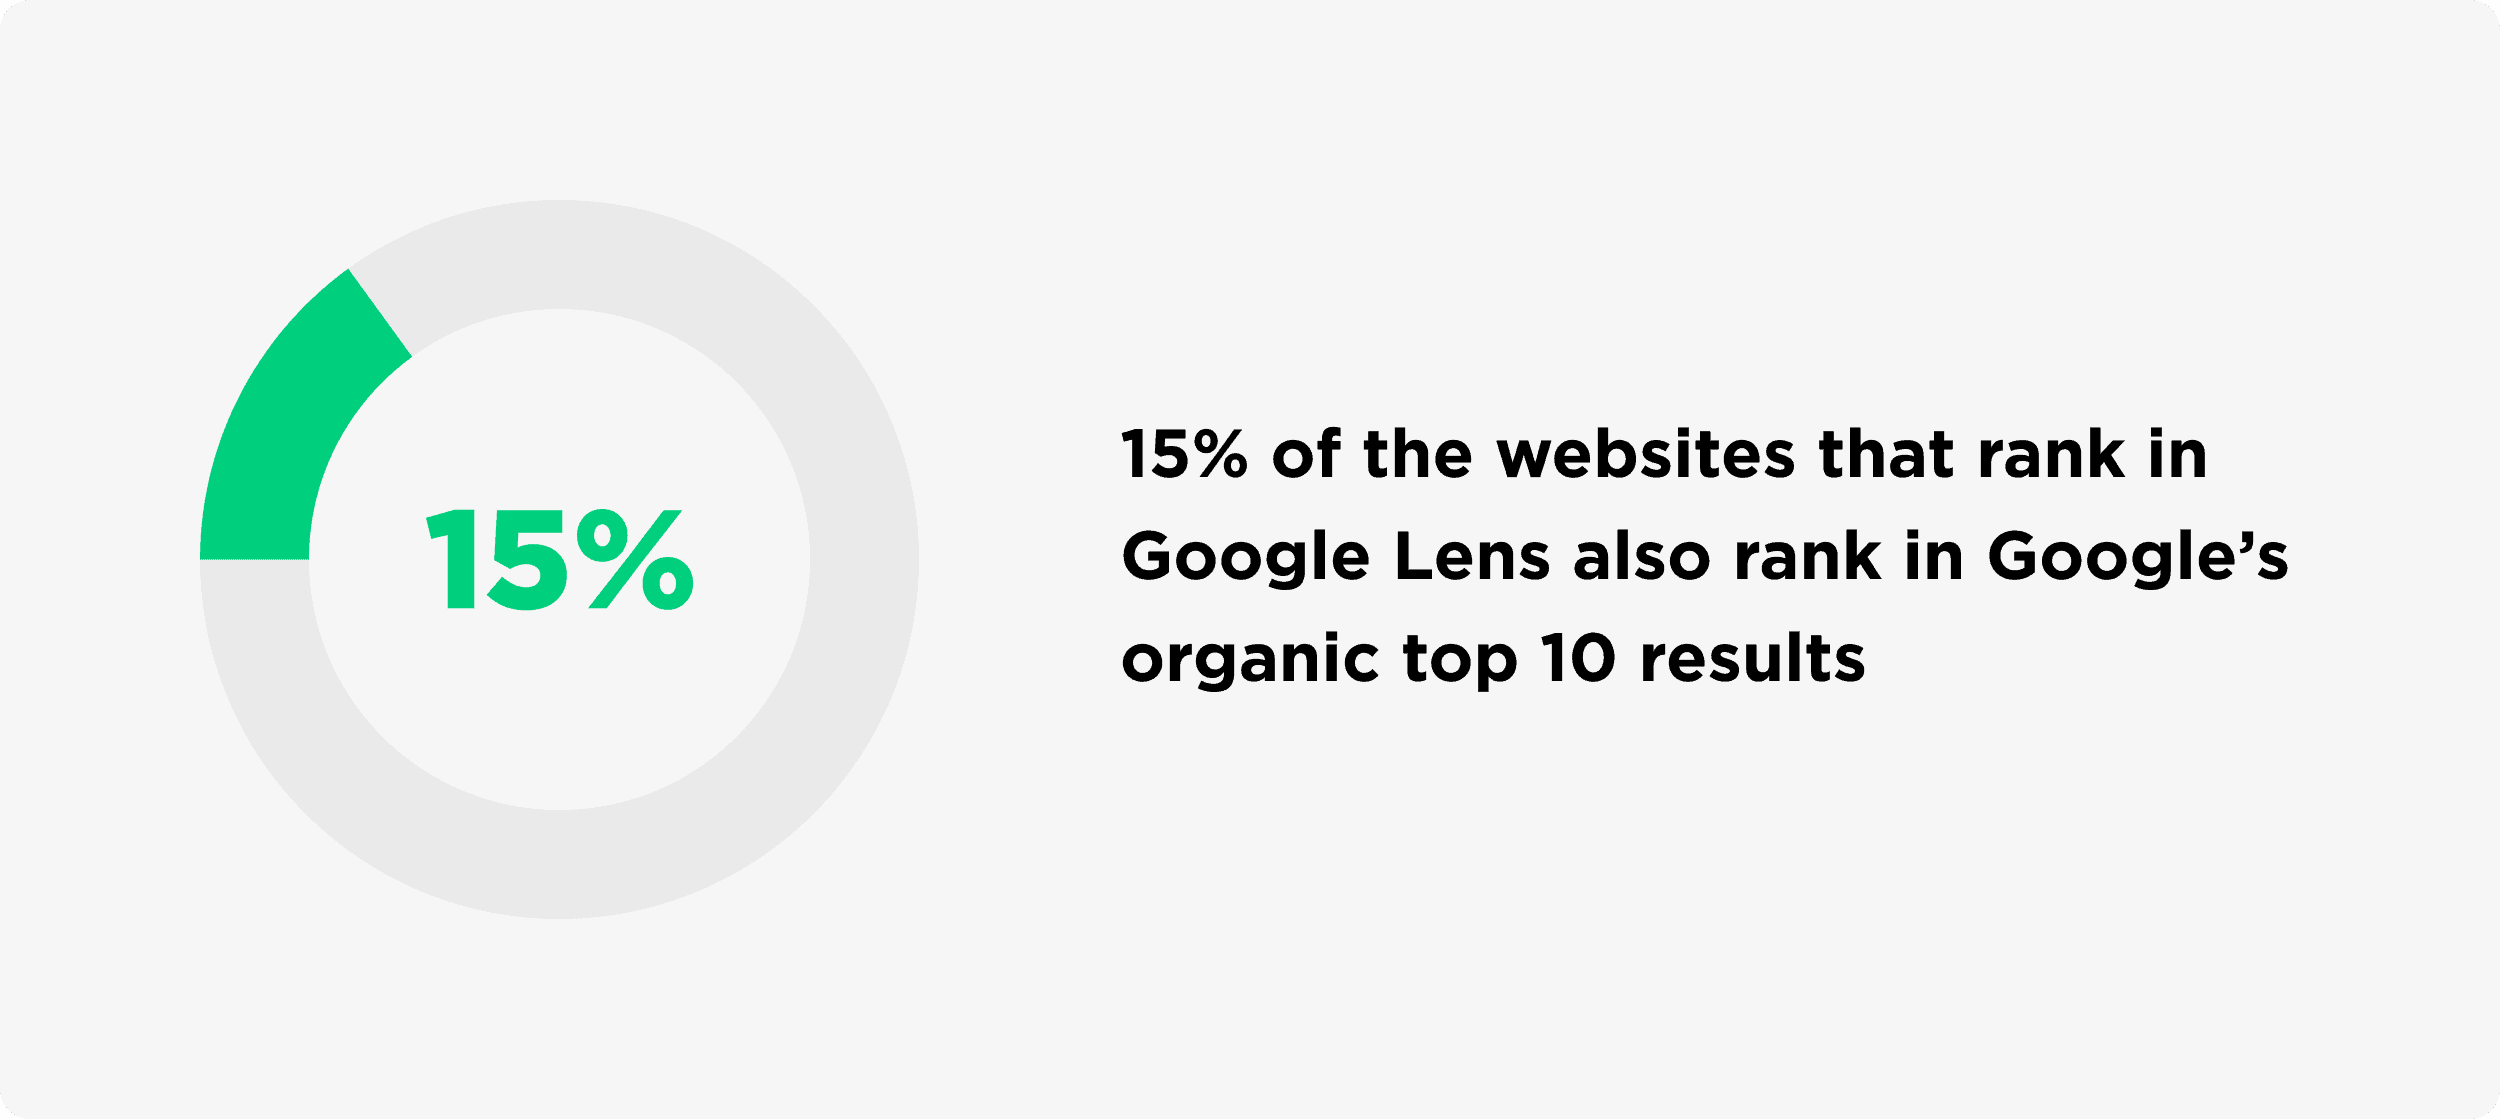 15% Of Websites That Rank In Google Lens Also Rank In Googles Organic Top 10 Results